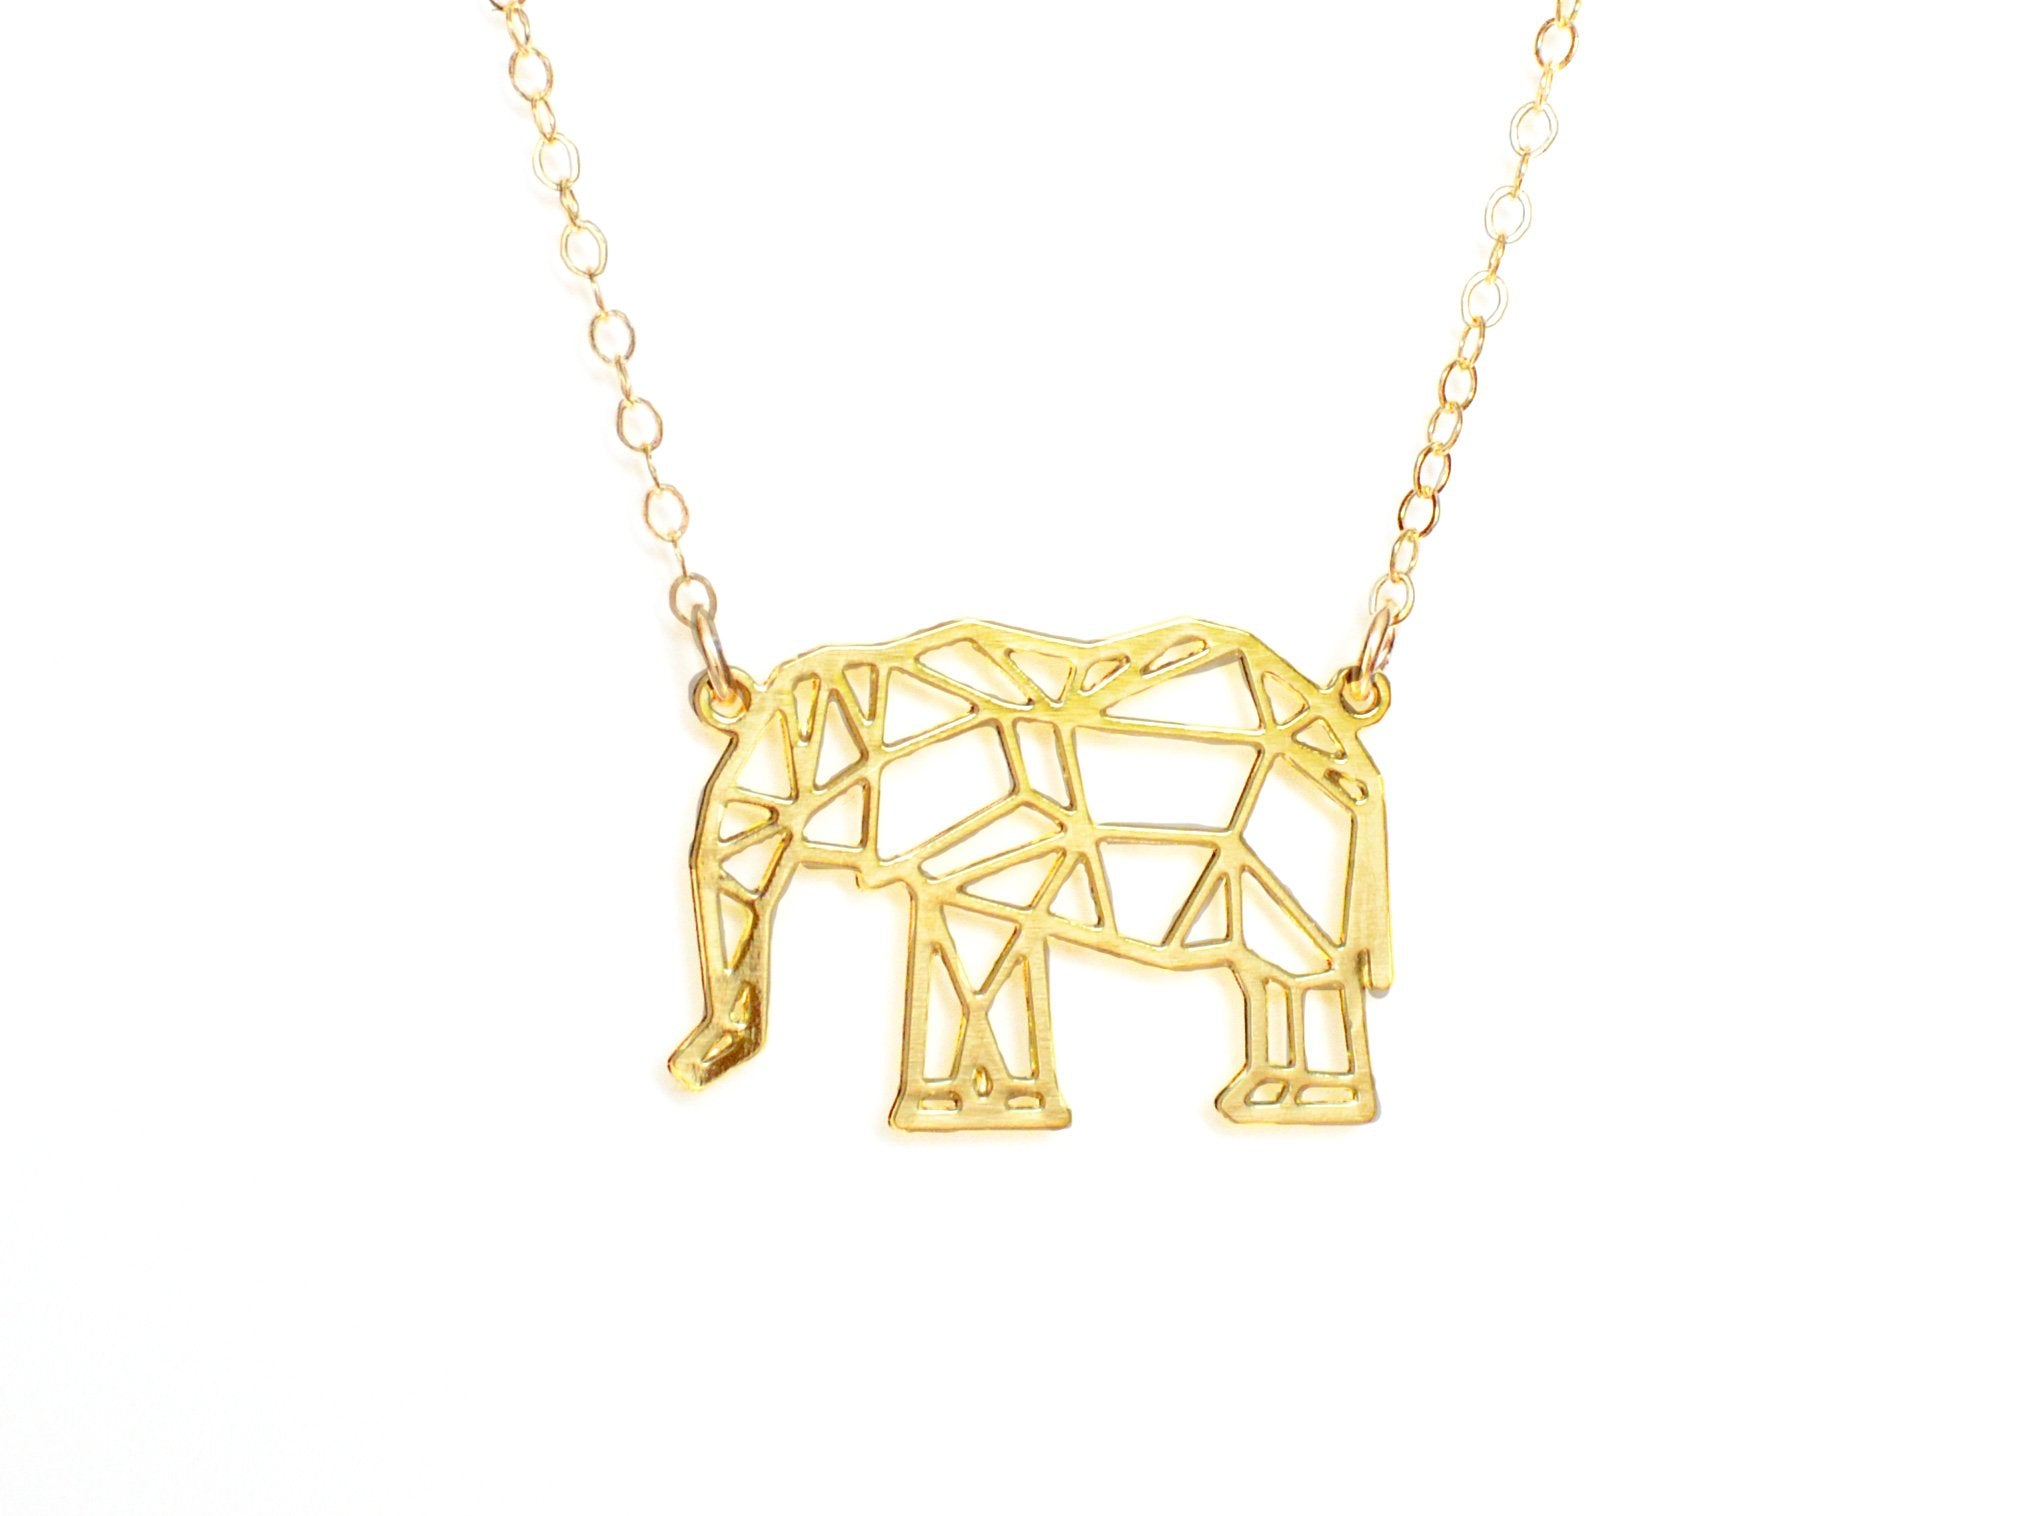 Elephant Necklace - Brevity Jewelry - Made in USA - Affordable Gold and Silver Jewelry